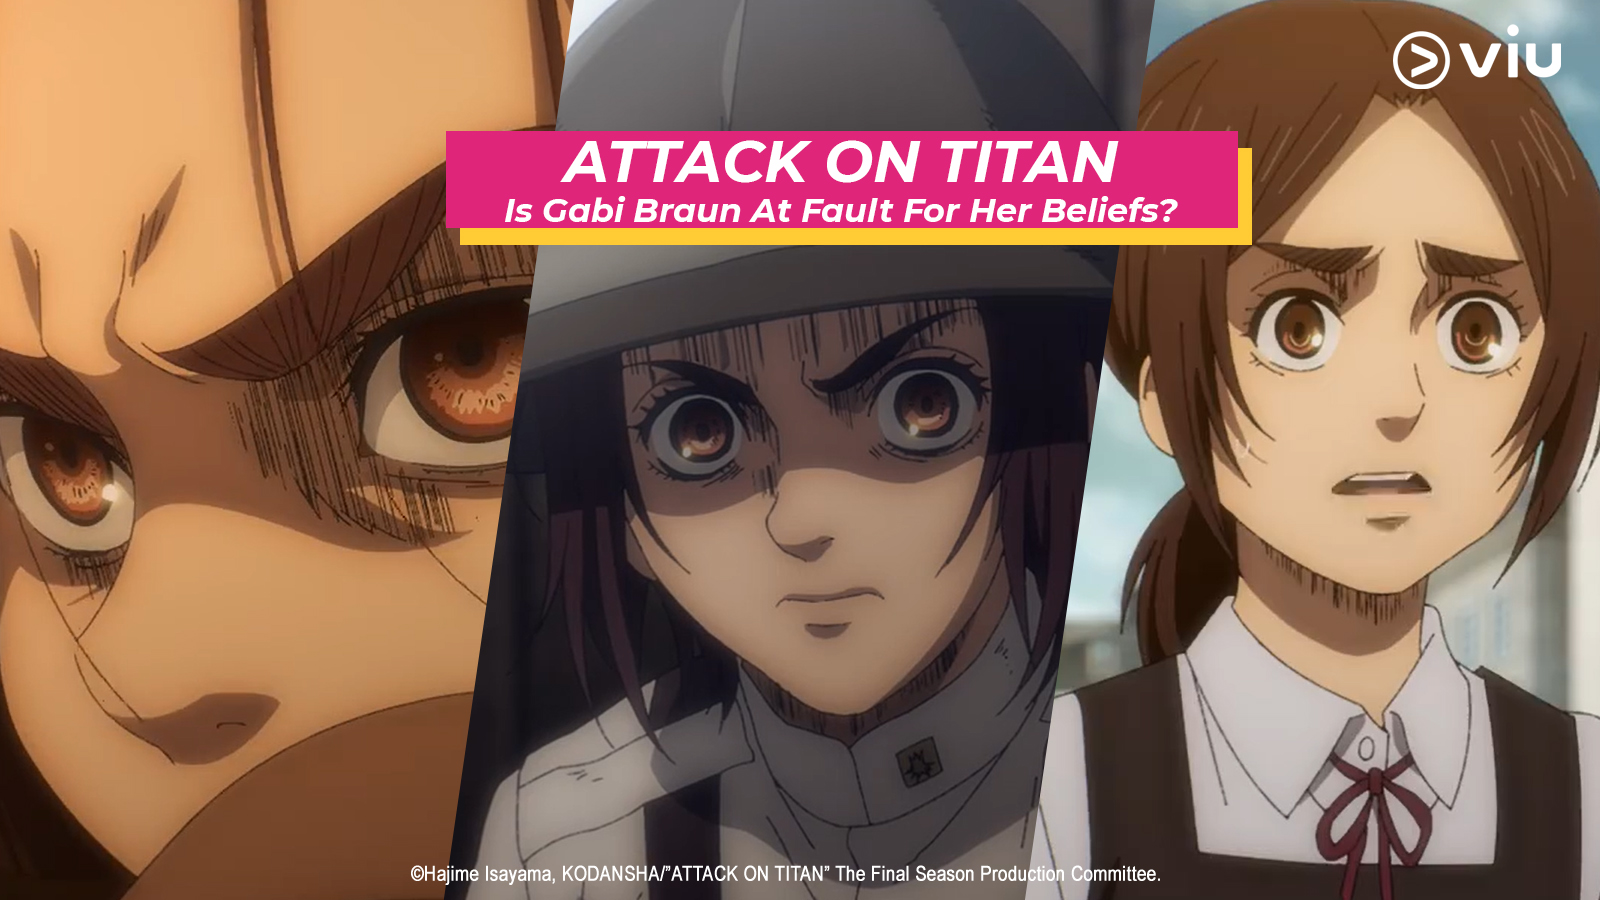 Attack On Titan: Is Gabi Braun At Fault For Her Beliefs?